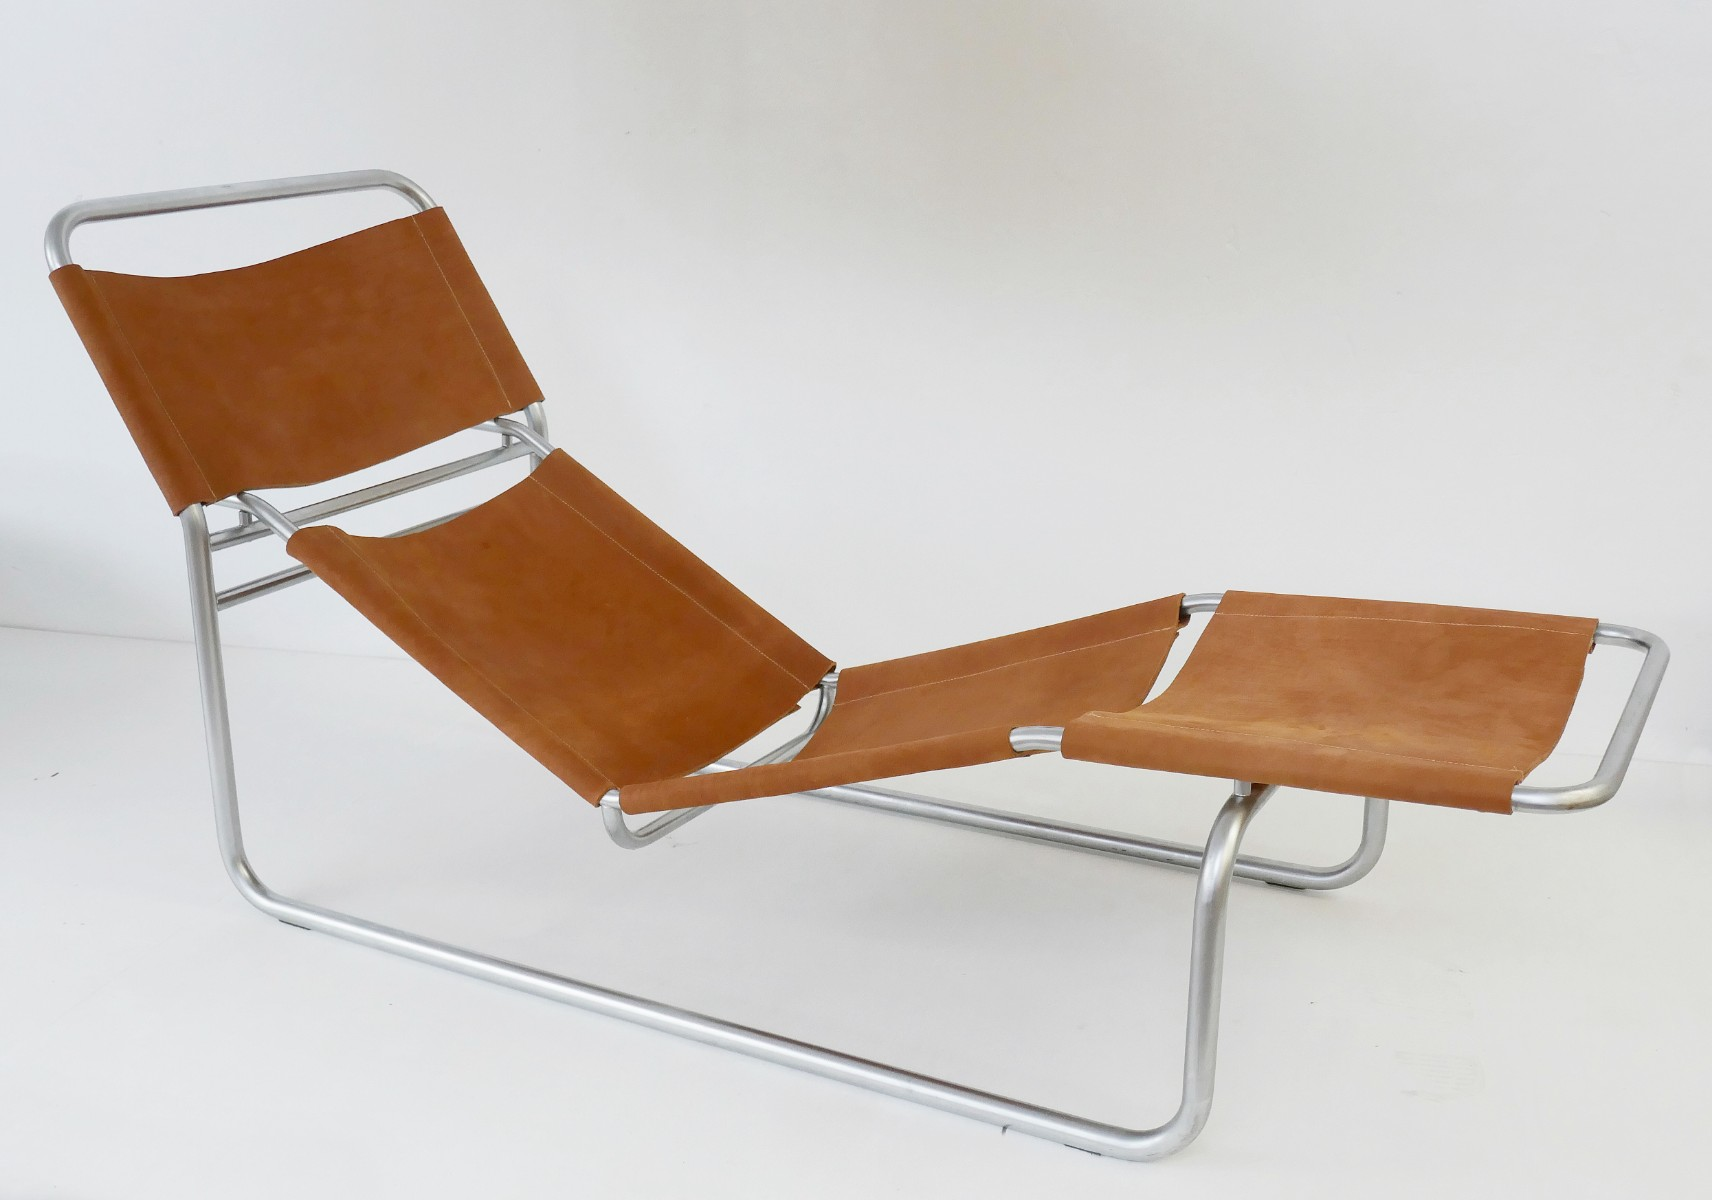 Outstanding Chrome And Leather Lounge Chair Chairs Items By Category Alphanode Cool Chair Designs And Ideas Alphanodeonline